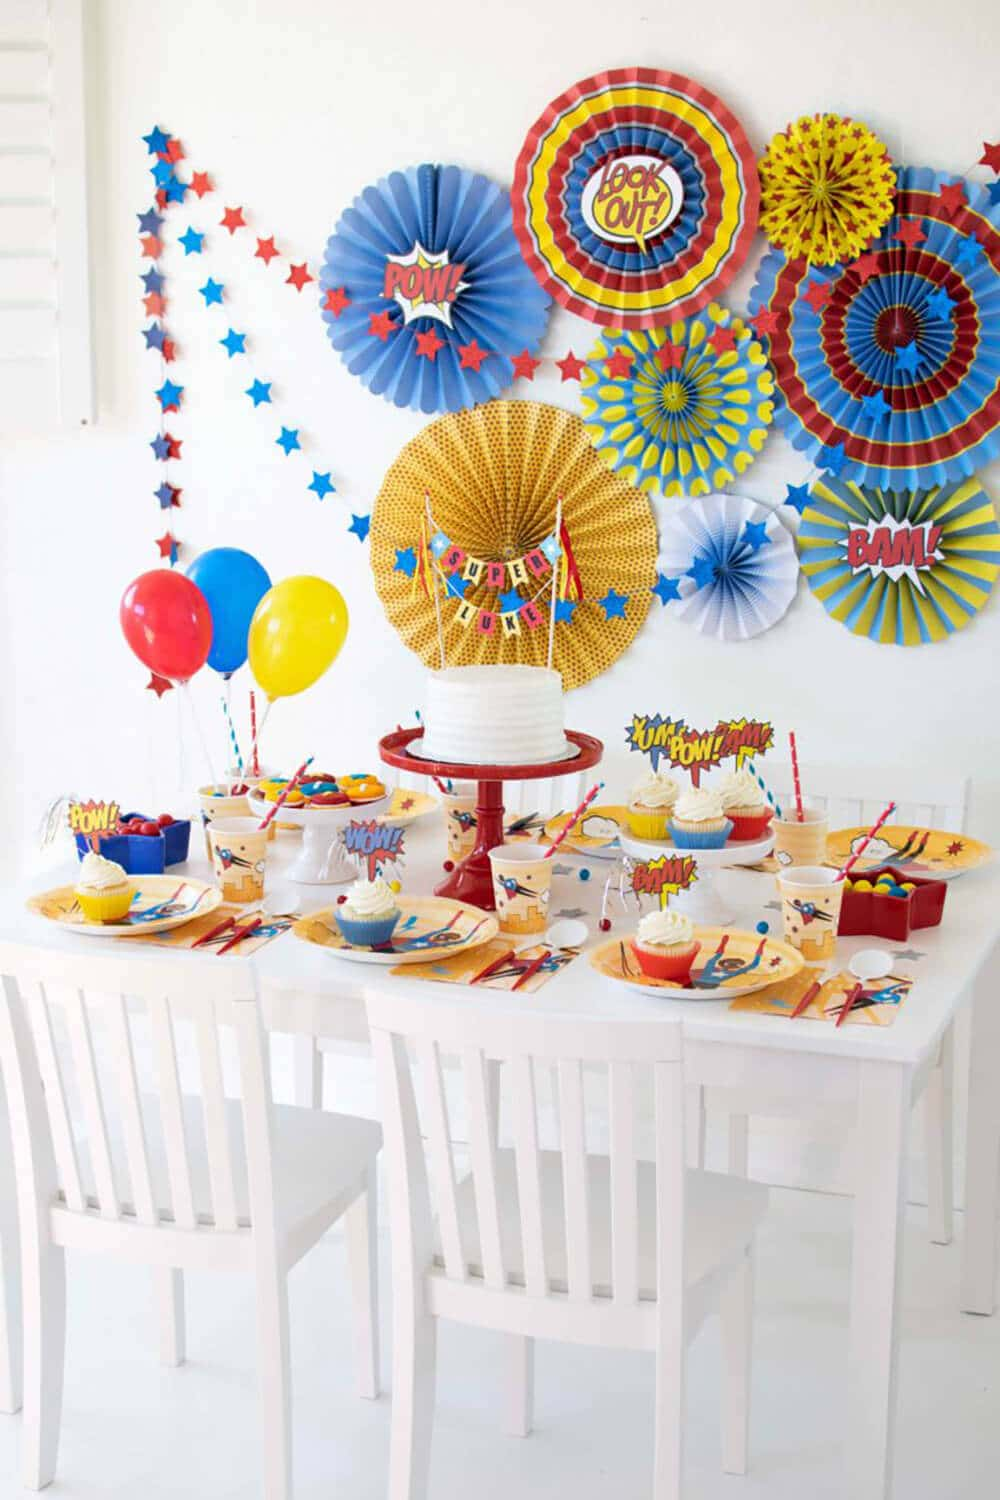 Super hero party set up by Twinkle Twinkle Little Party